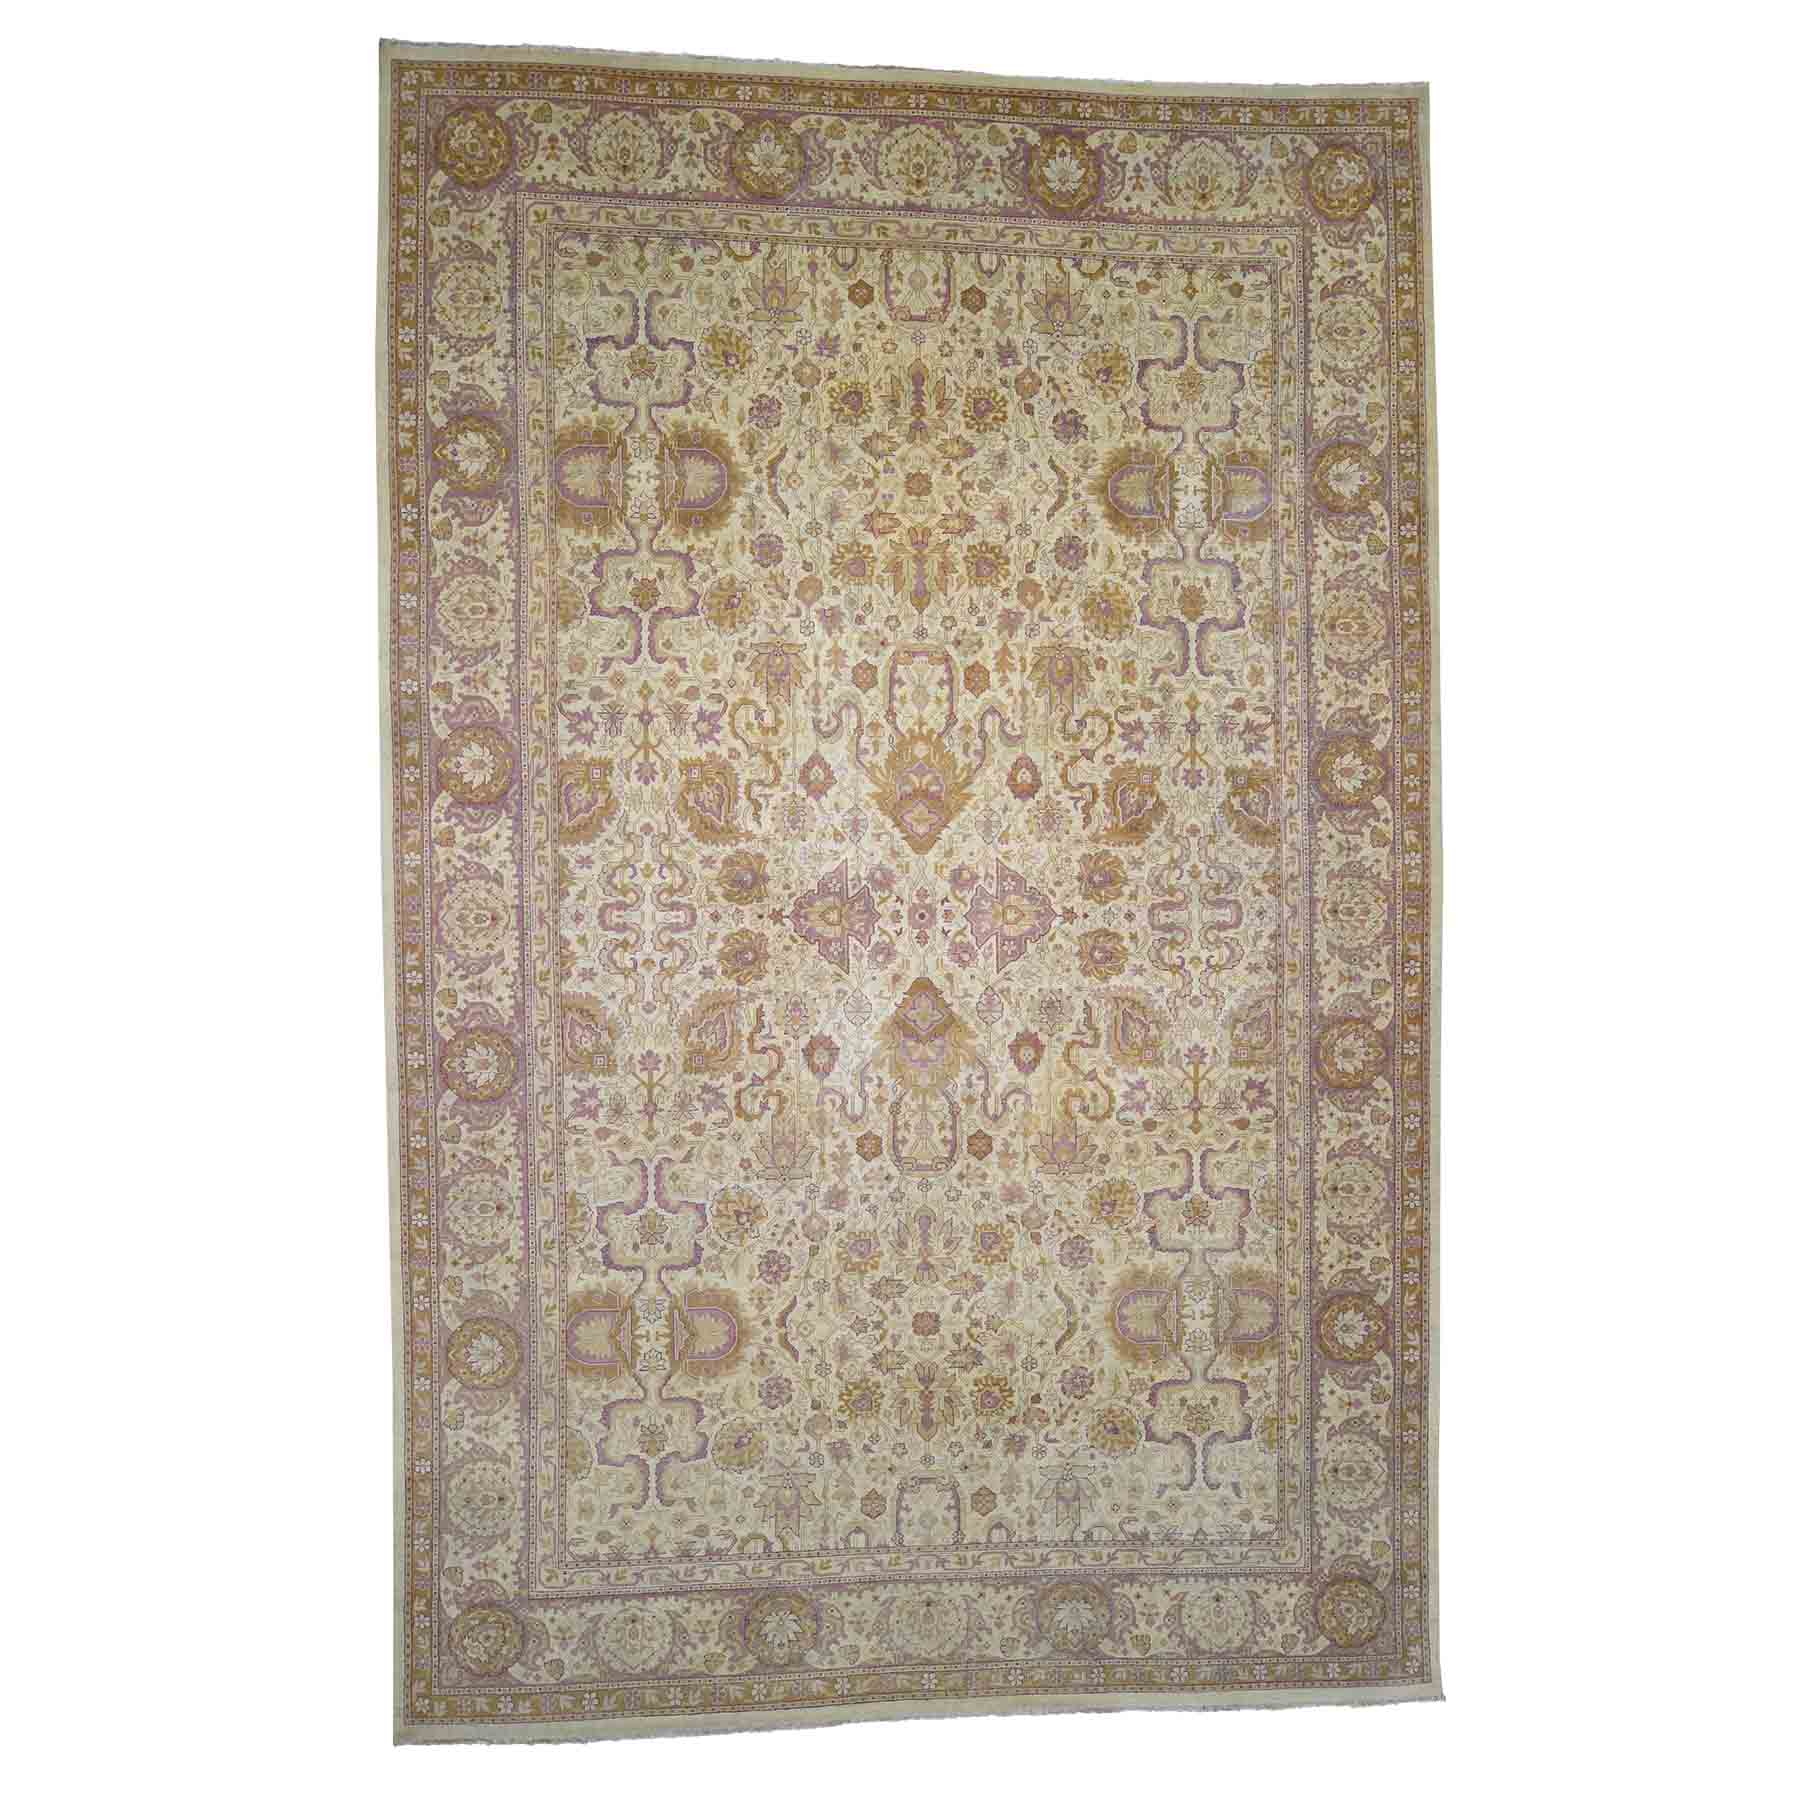 Antique Collection Hand Knotted Green Rug No: 182350